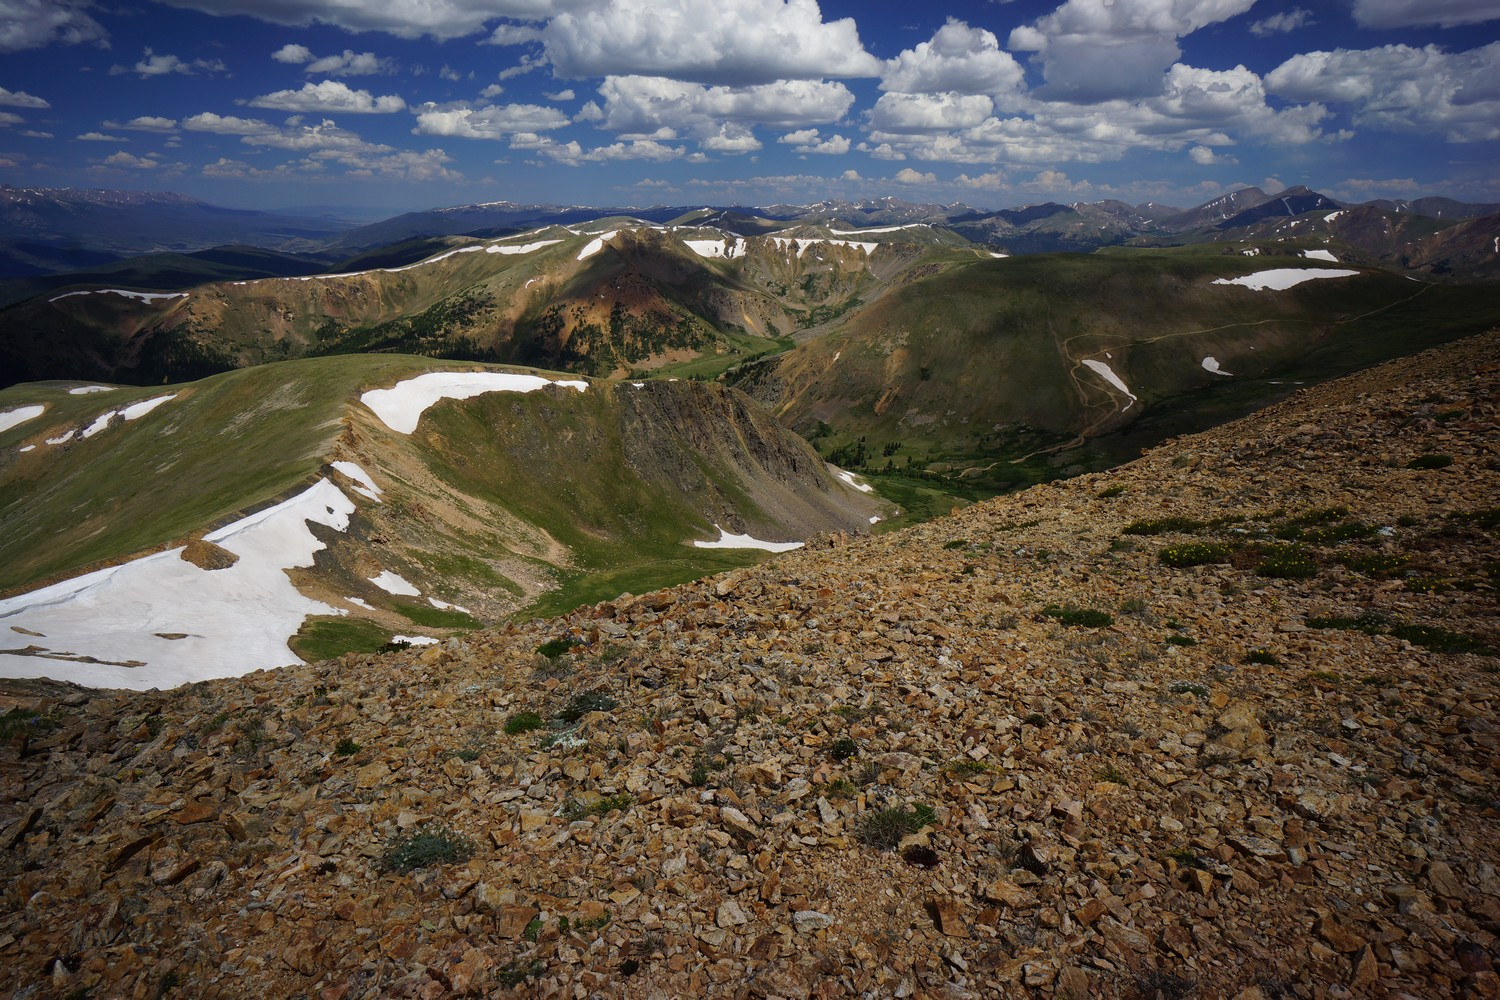 continental divide trail hike photo north of breckenridge